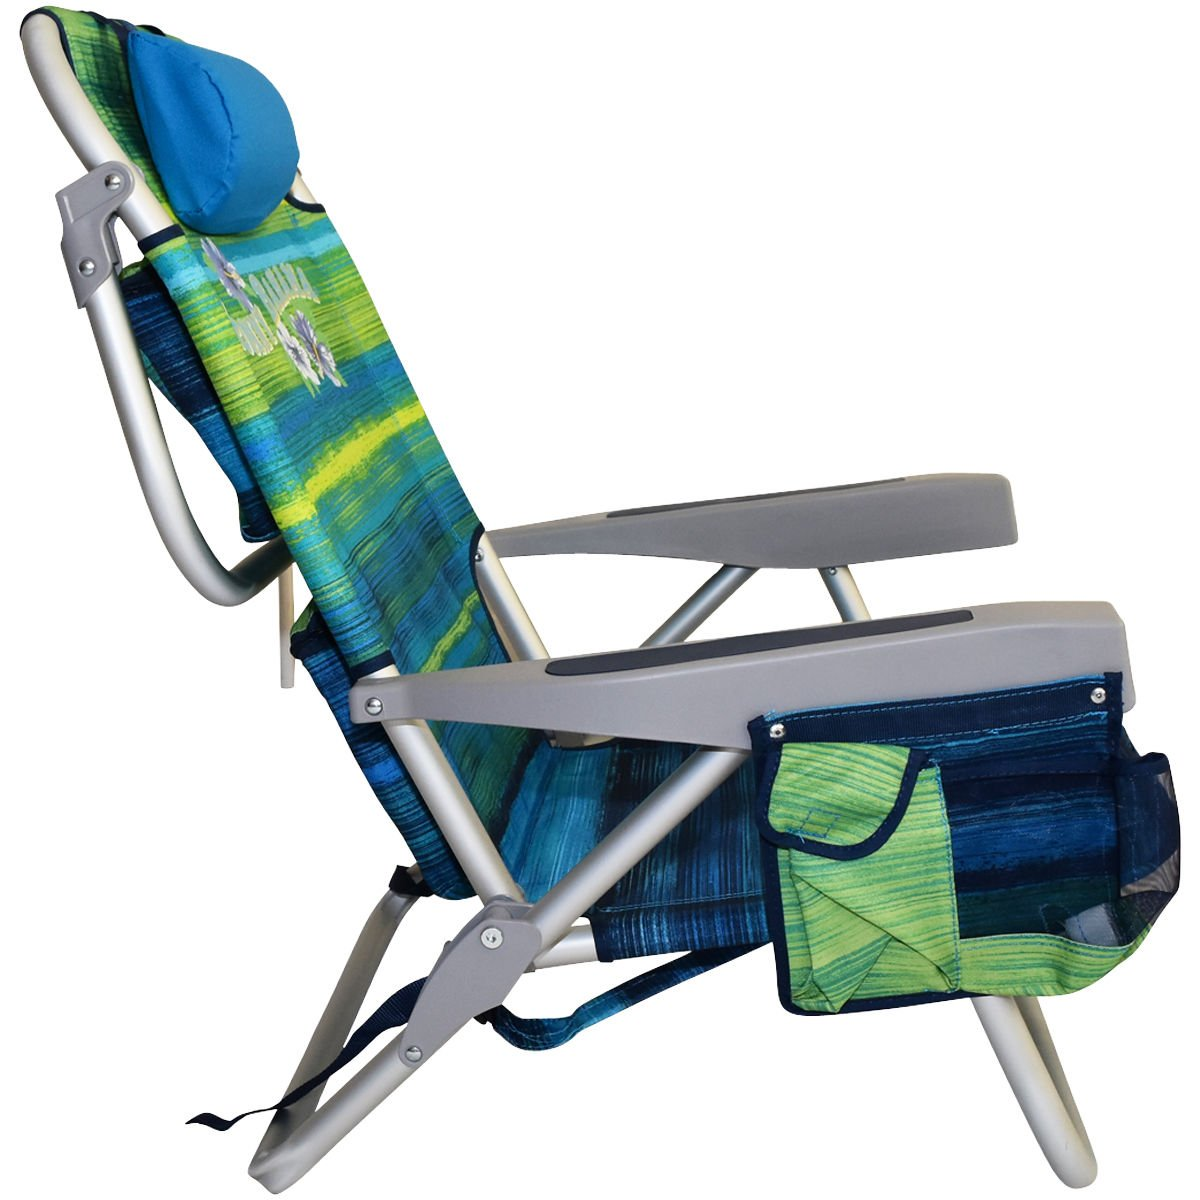 Tommy Bahama Backpack Beach Chairs with One Medium Tote Bag - Pack of 2 - Green by Tommy Bahama (Image #3)